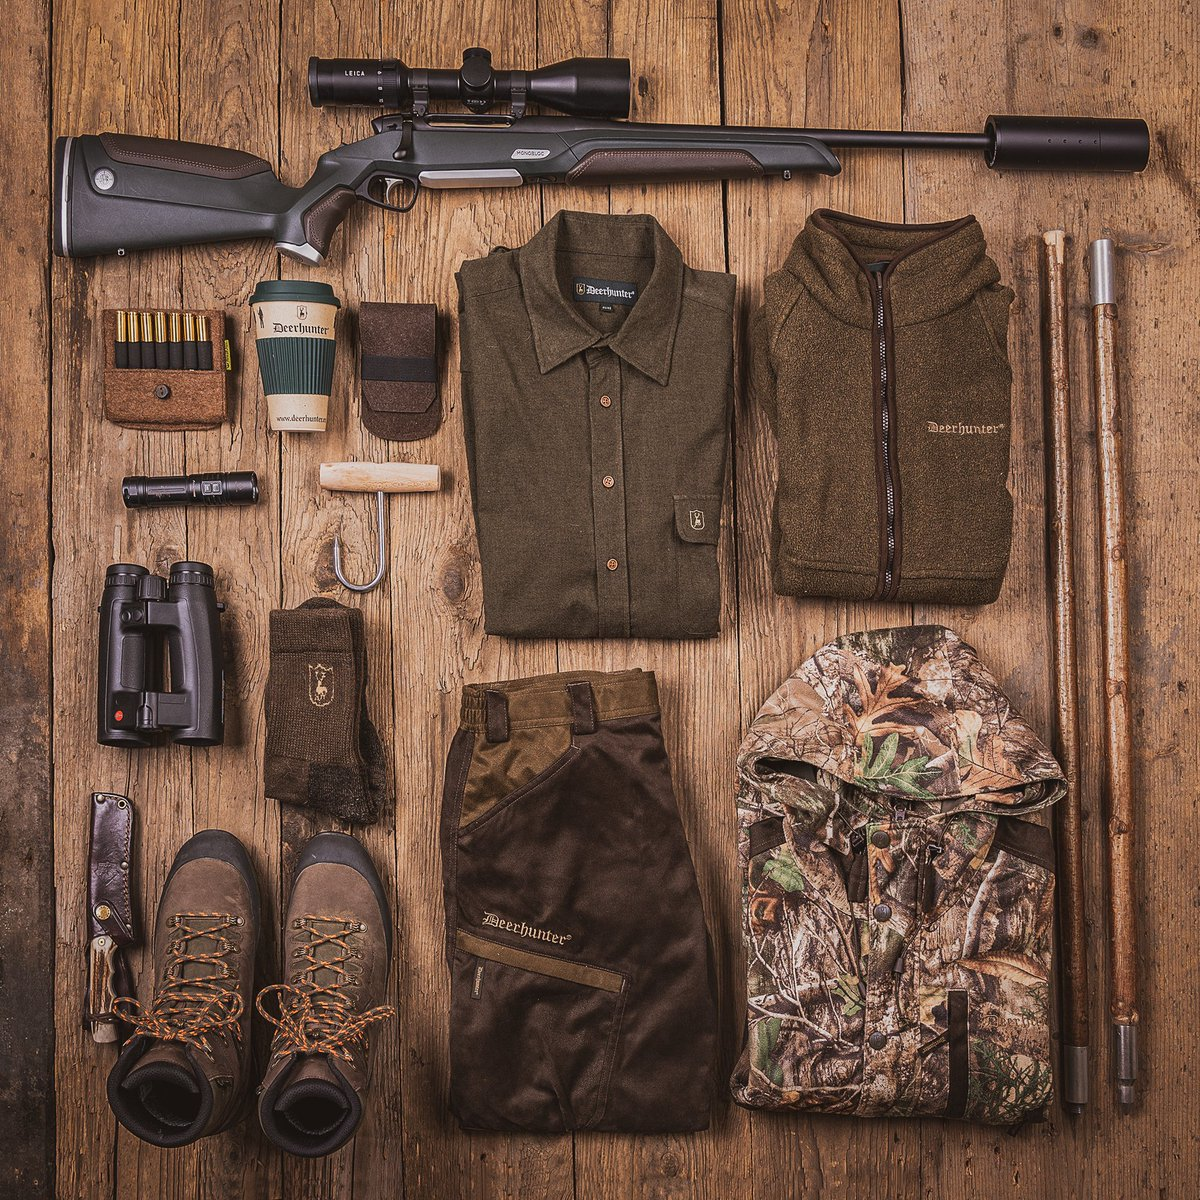 Inspiration for the upcomming hunting season 🦌🌲 There is always room for more new gear - agree? 🙃  #Deerhunter #huntinggear #huntingseason #outdoorgear #jagttøj #jagdbekleidung #outdoorclothing https://t.co/vX8PlZVstF